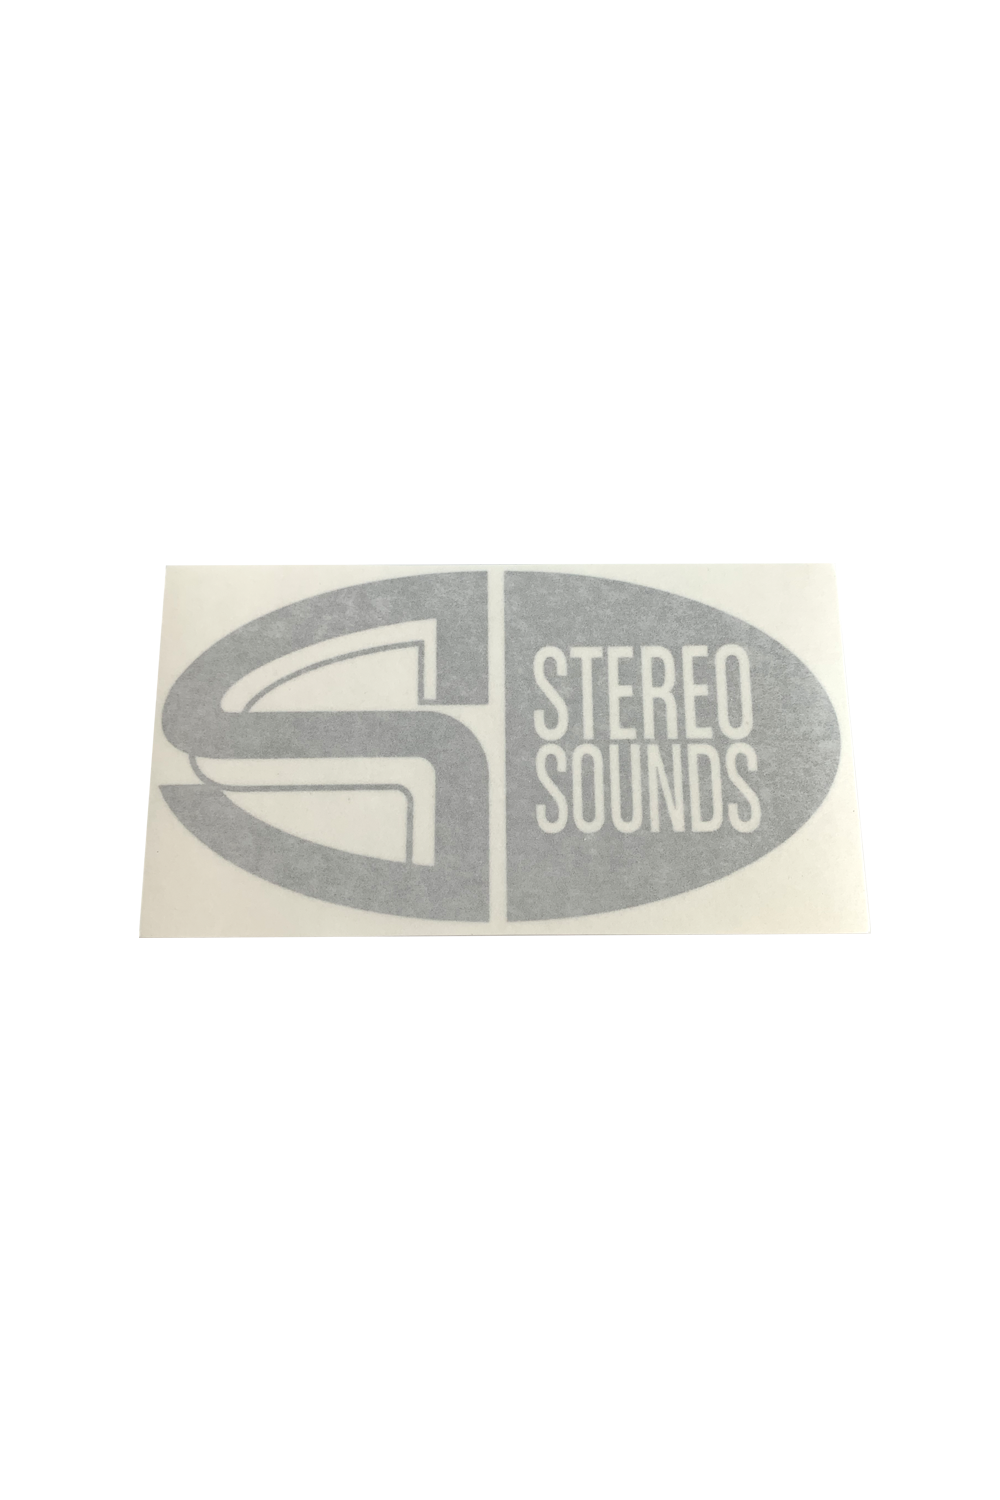 Stereo Sounds decal - black